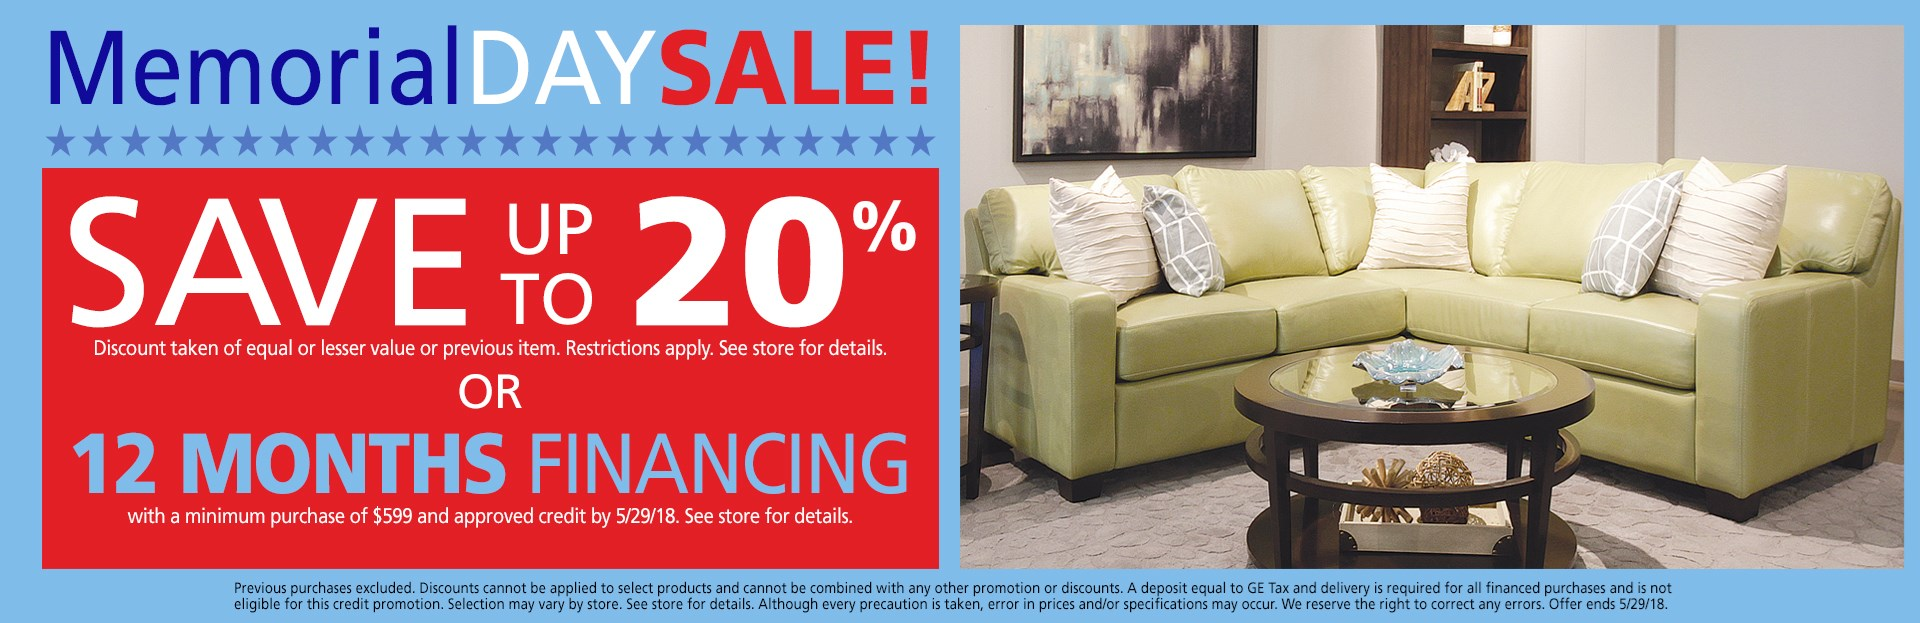 Save up to 20% or 12 months financing; see store for details.